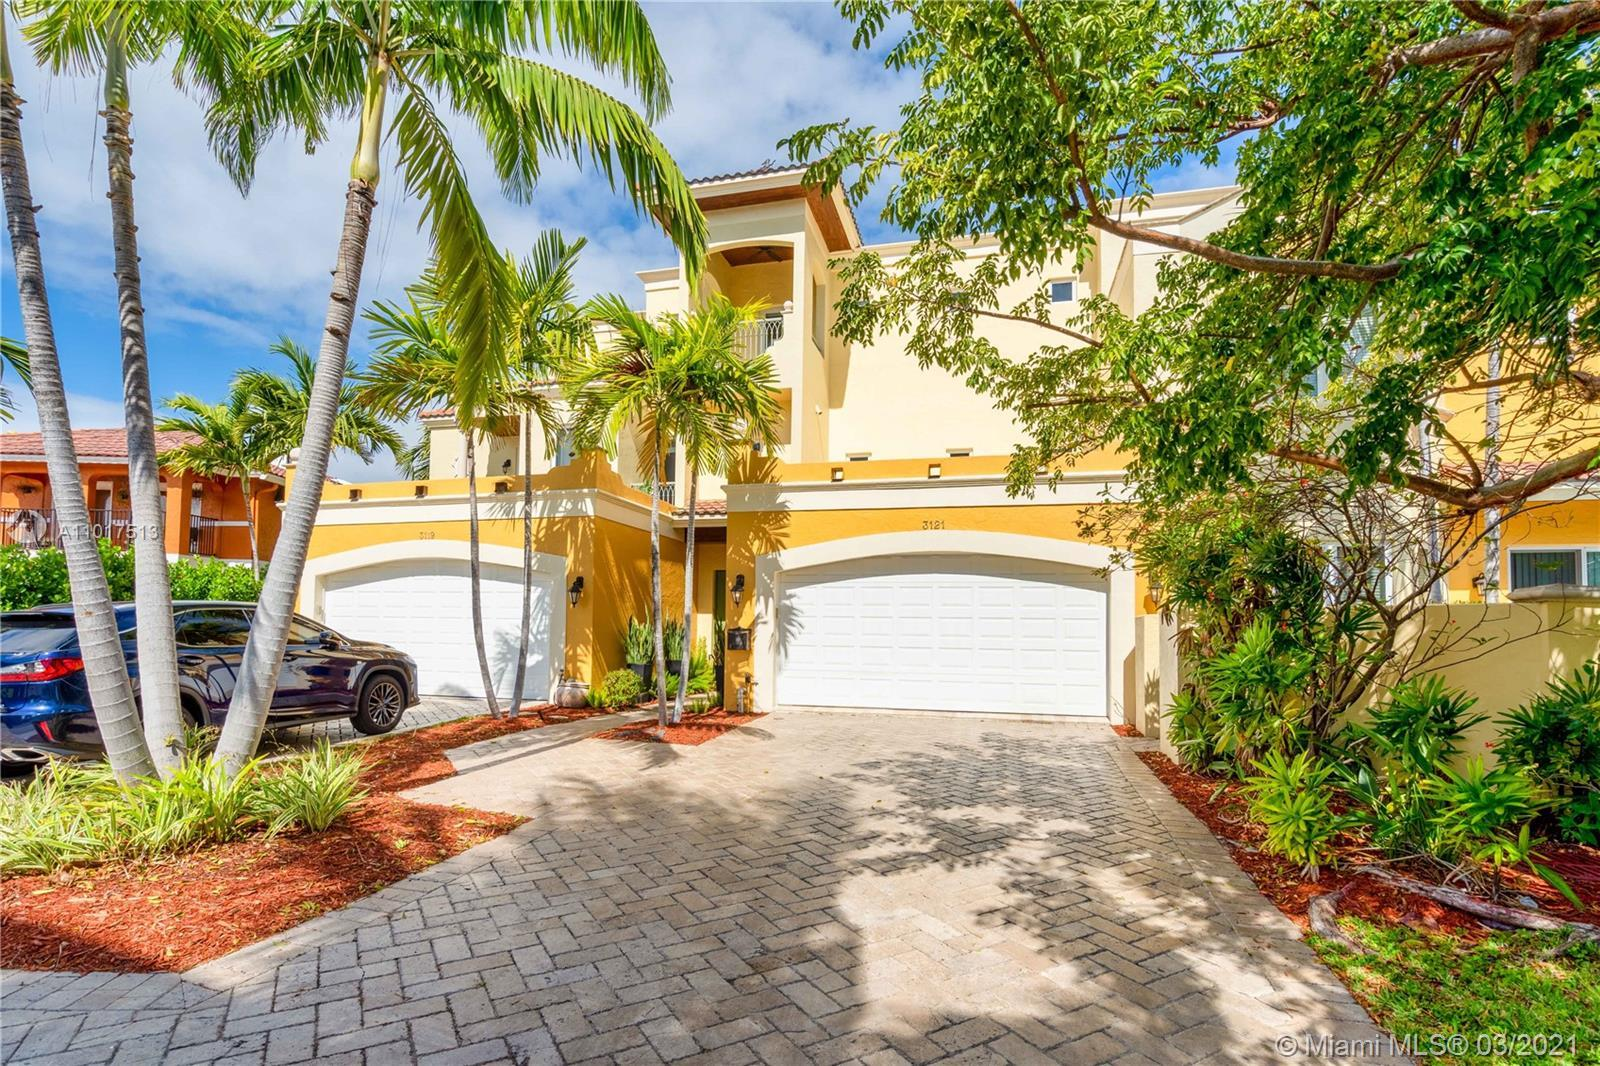 One of a kind townhome in the prestigious Dolphin Isles in east Fort Lauderdale. This 3 bedroom, 4 b